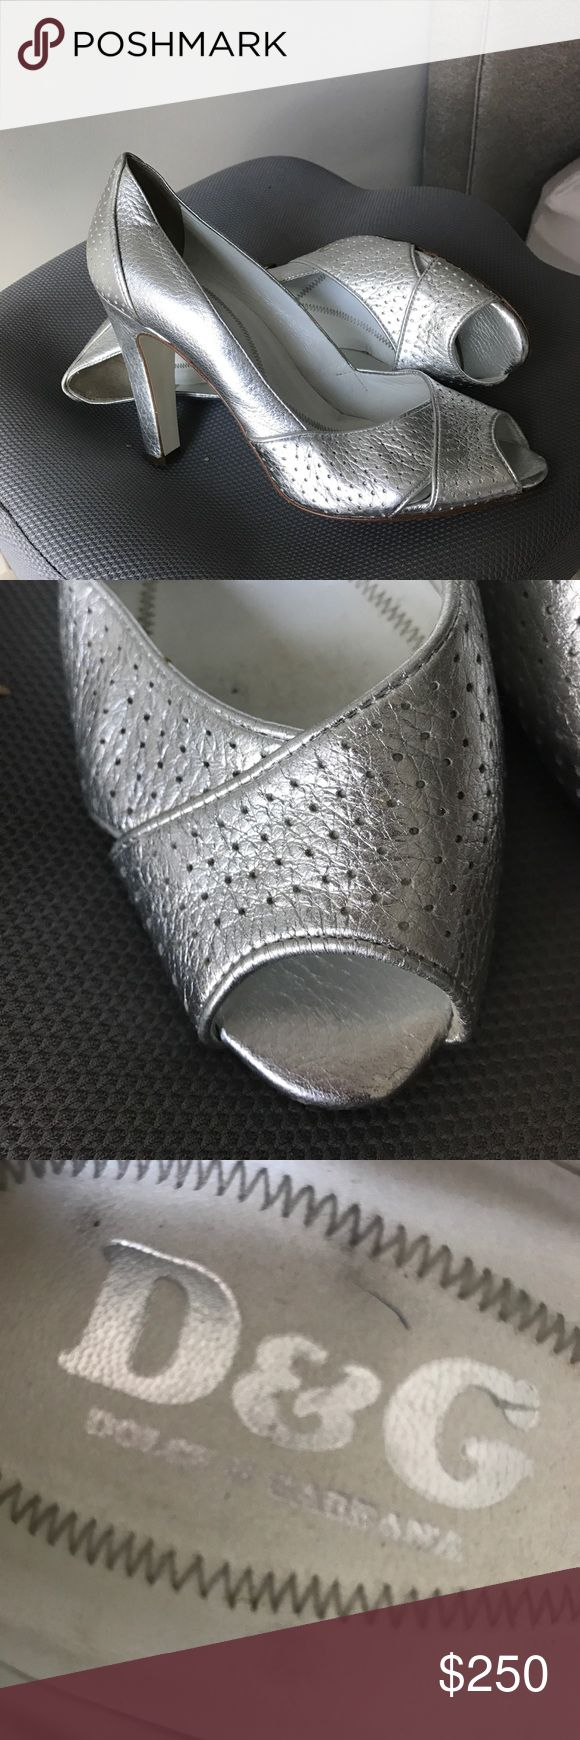 Dolce Gabbana (D&G) Silver High Heel Shoe Excellent condition Dolce & Gabbana high heel silver open toe shoes. Great for a wedding, prom, or spring/summer event. Dolce & Gabbana Shoes Heels